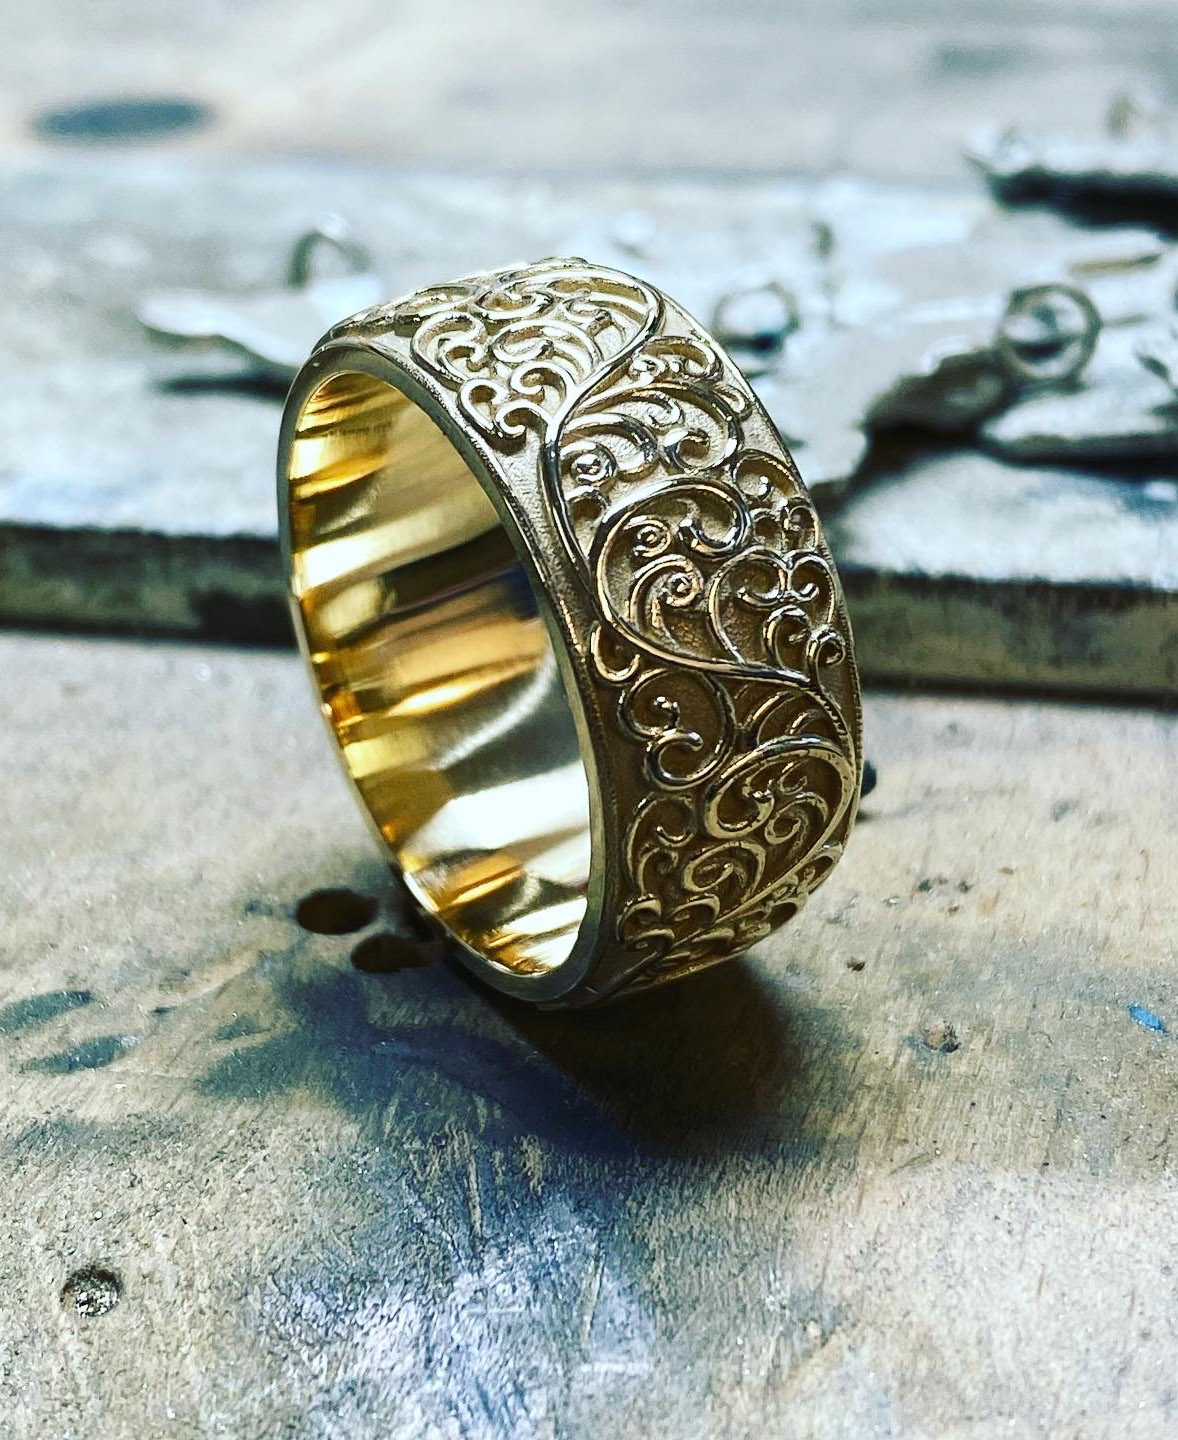 jewellery finishing ring